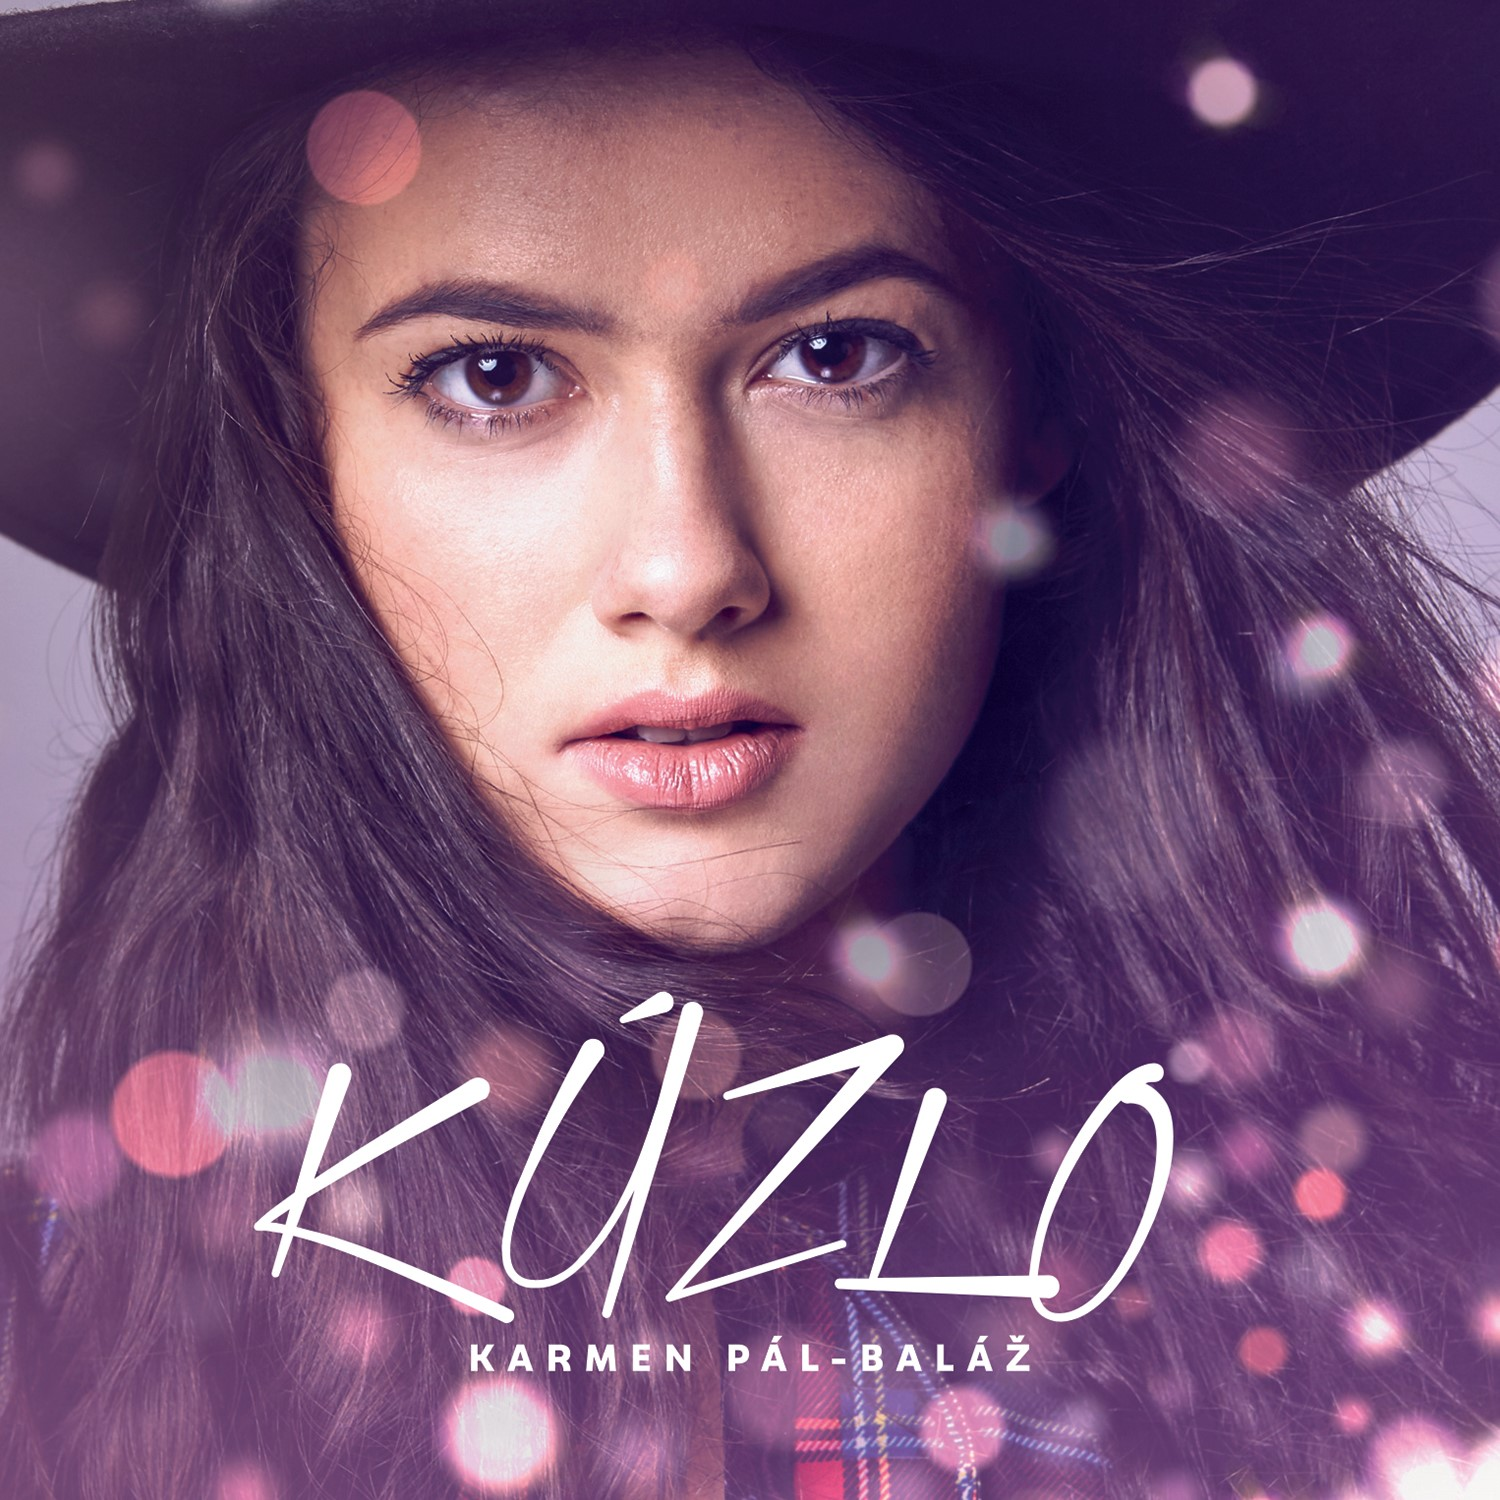 CD Shop - KARMEN PAL BALAZ KUZLO